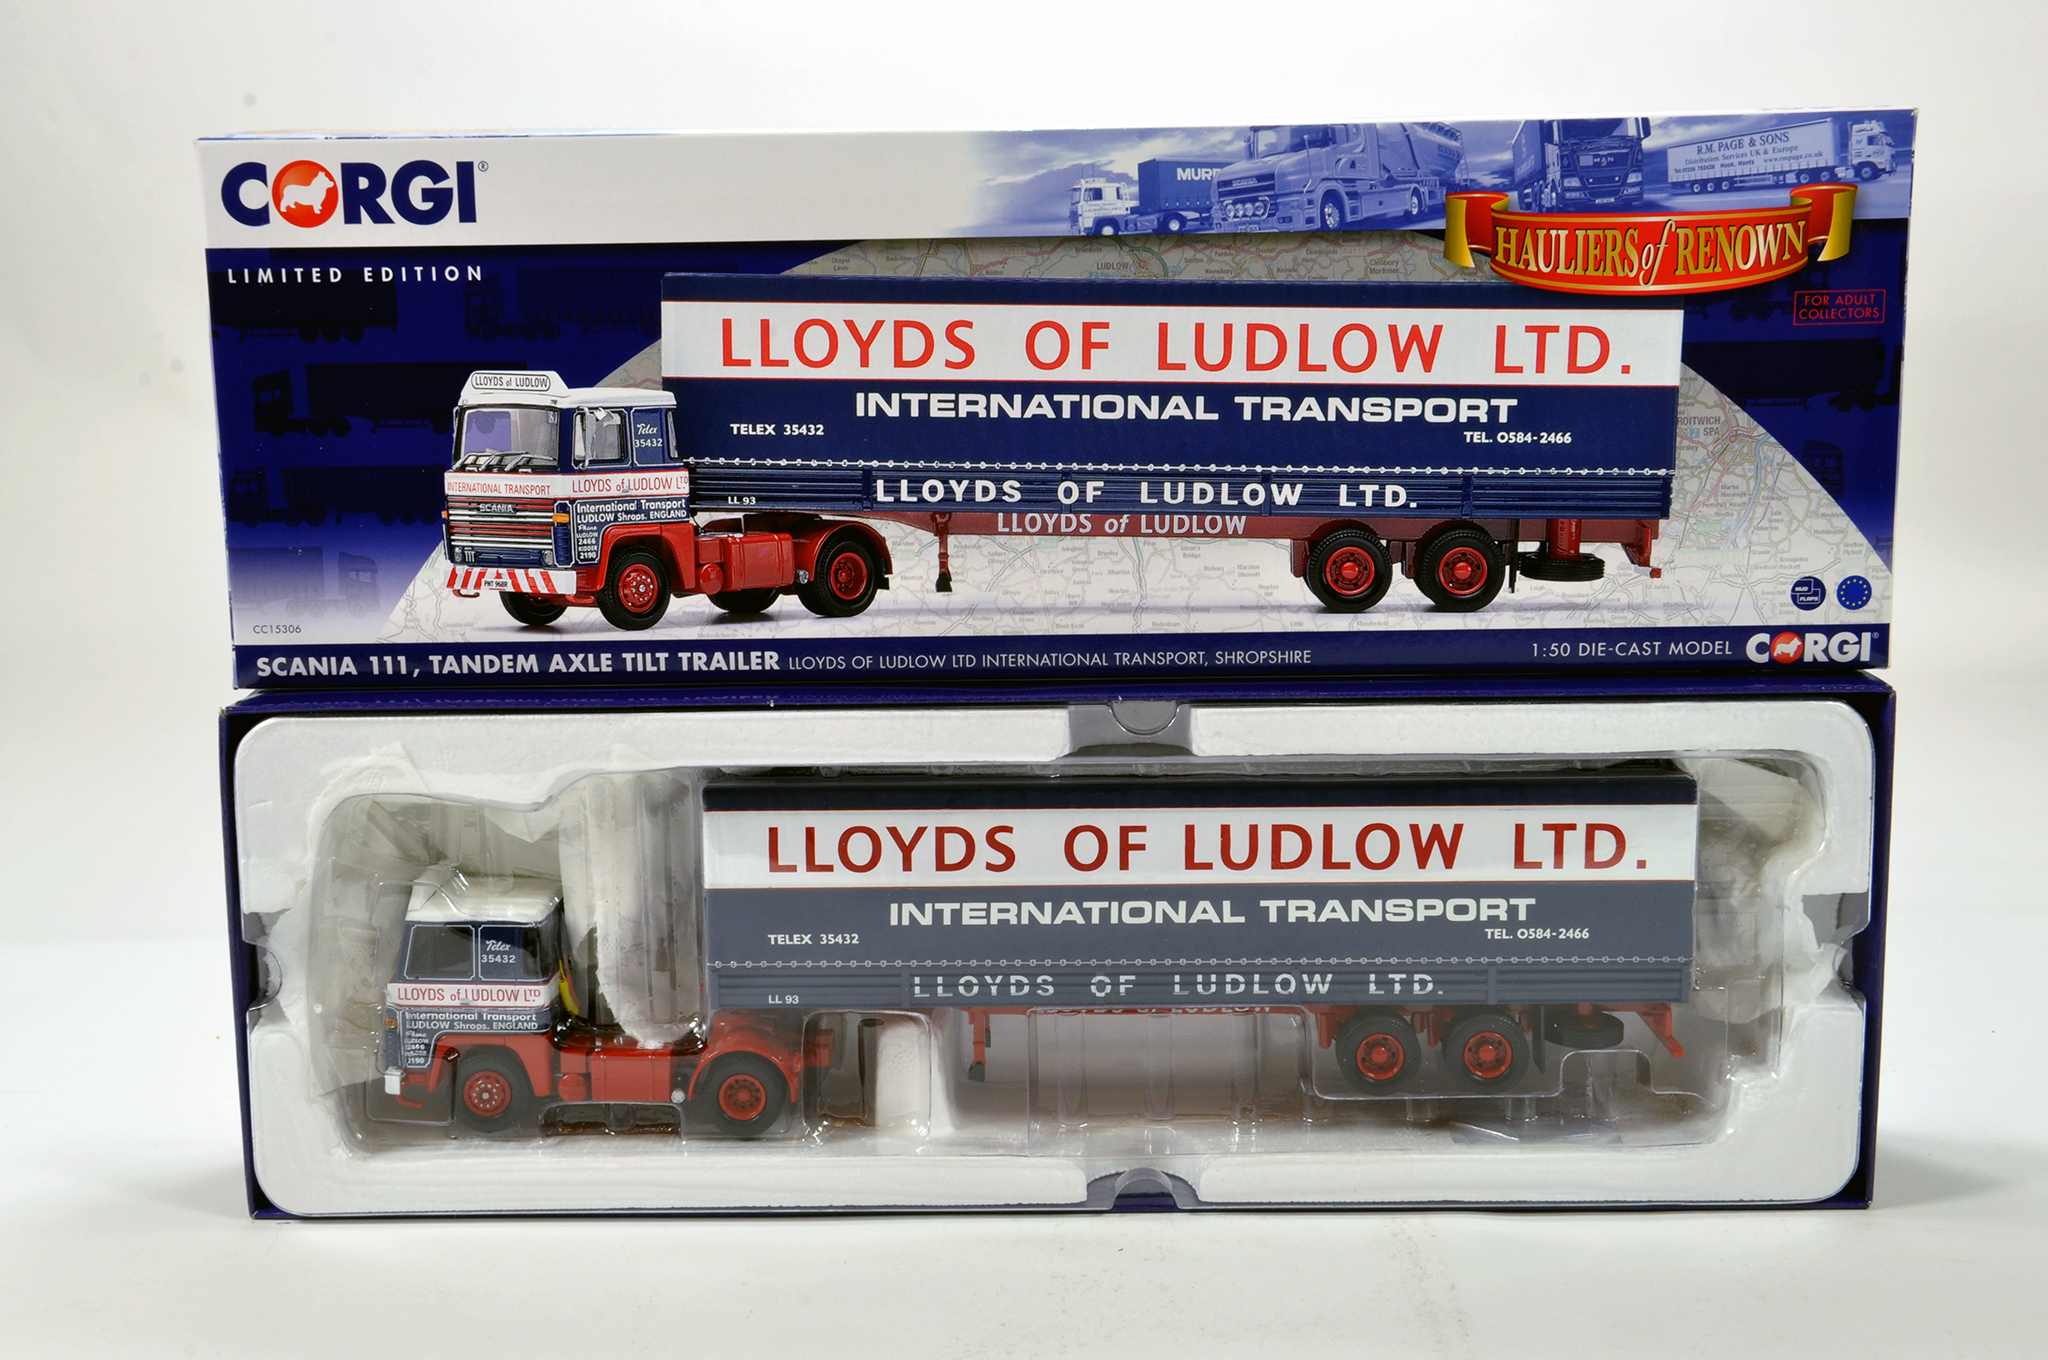 Lot 8 - Corgi 1/50 diecast truck issue comprising No. CC15306 Scania 111 Tilt Trailer in livery of Lloyds of